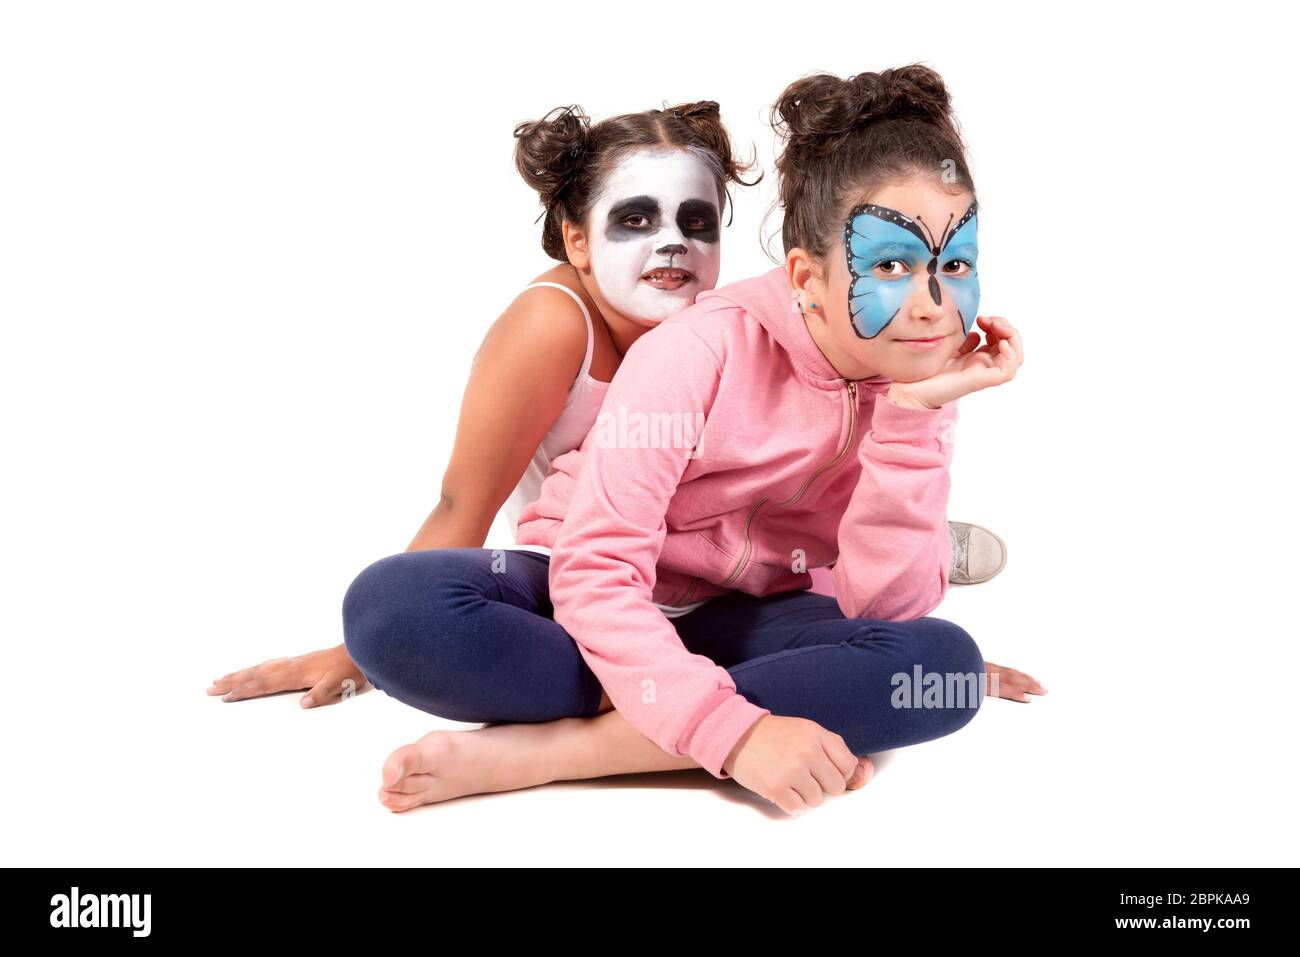 Panda Face Paint High Resolution Stock Photography And Images Alamy